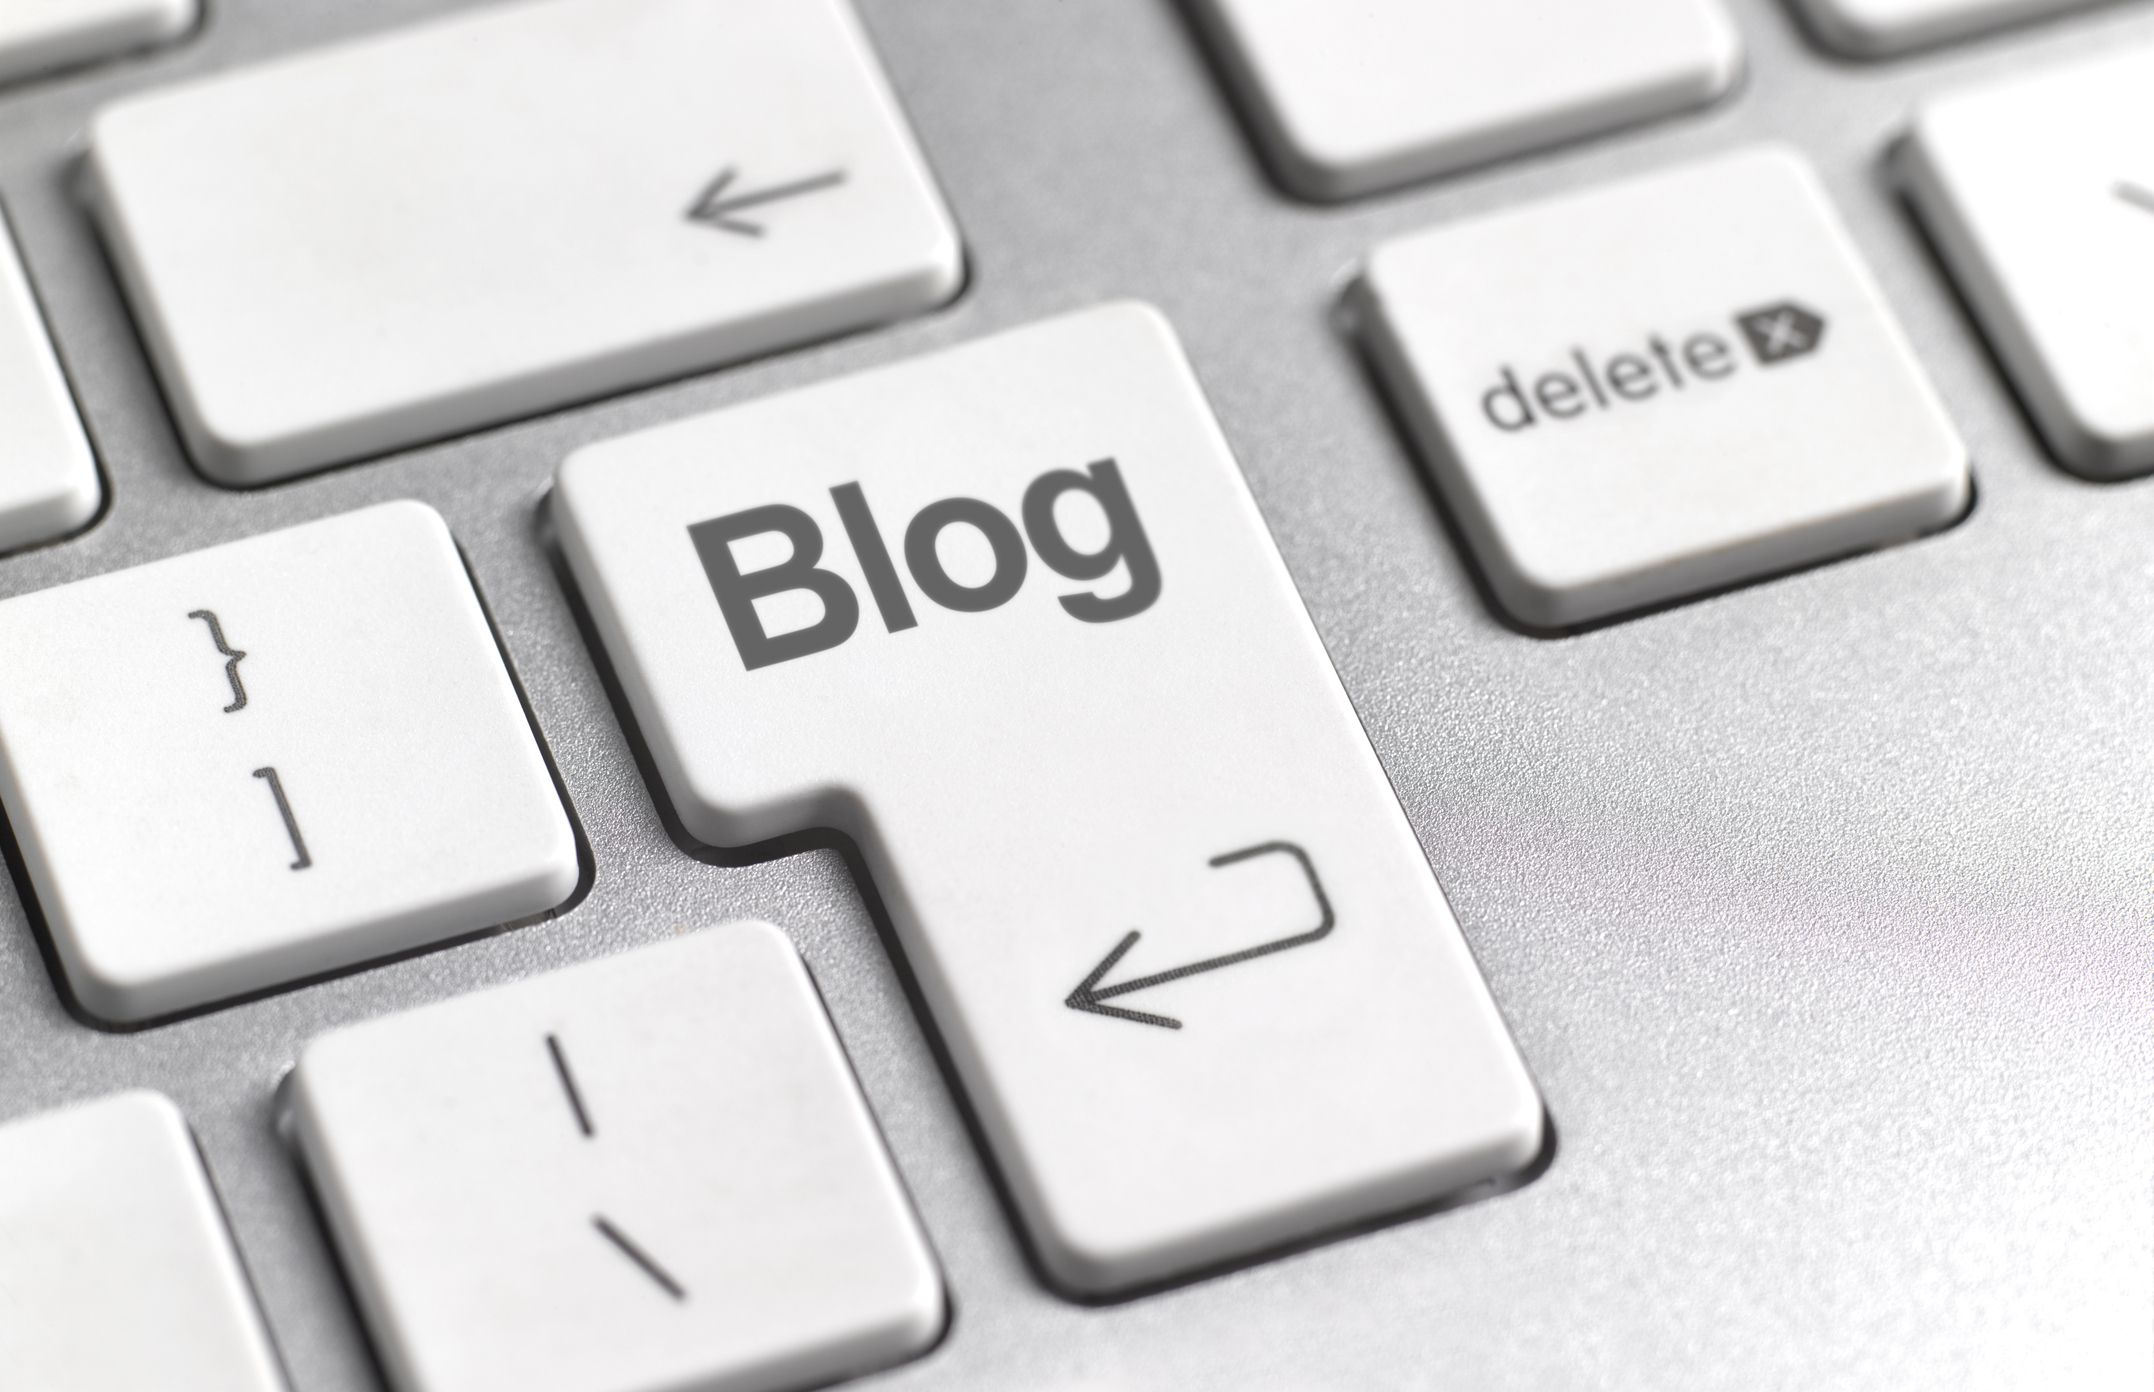 Sample Blog Terms and Conditions Policy